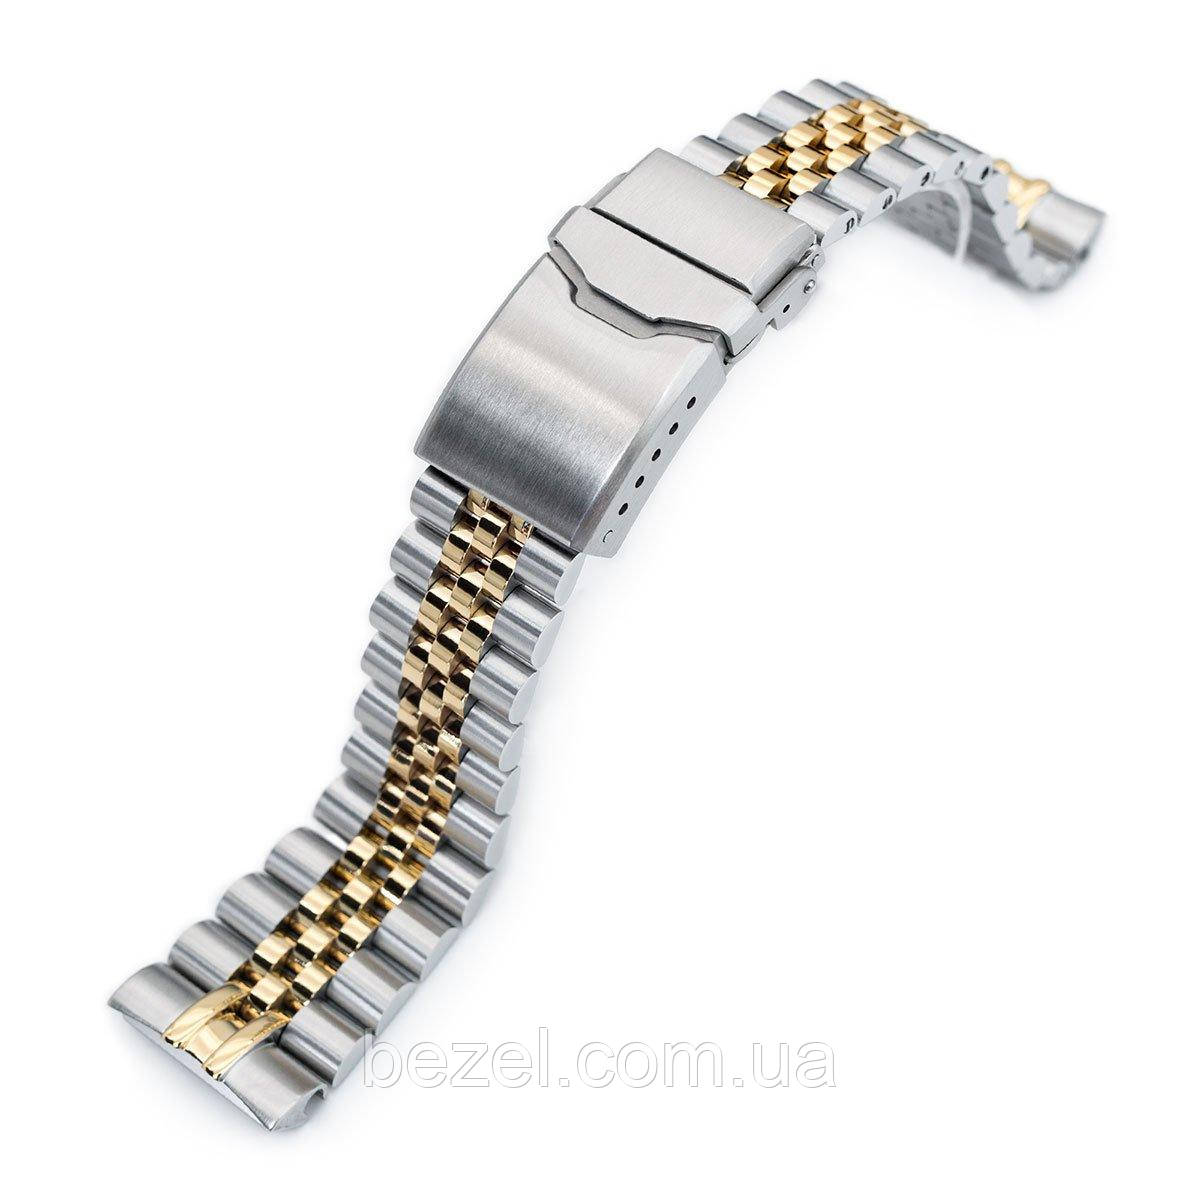 22mm Super 3D Jubilee 316L Stainless Steel Watch Bracelet for Seiko New Turtles SRP775, Button Chamfer Clasp Two Tone IP Gold